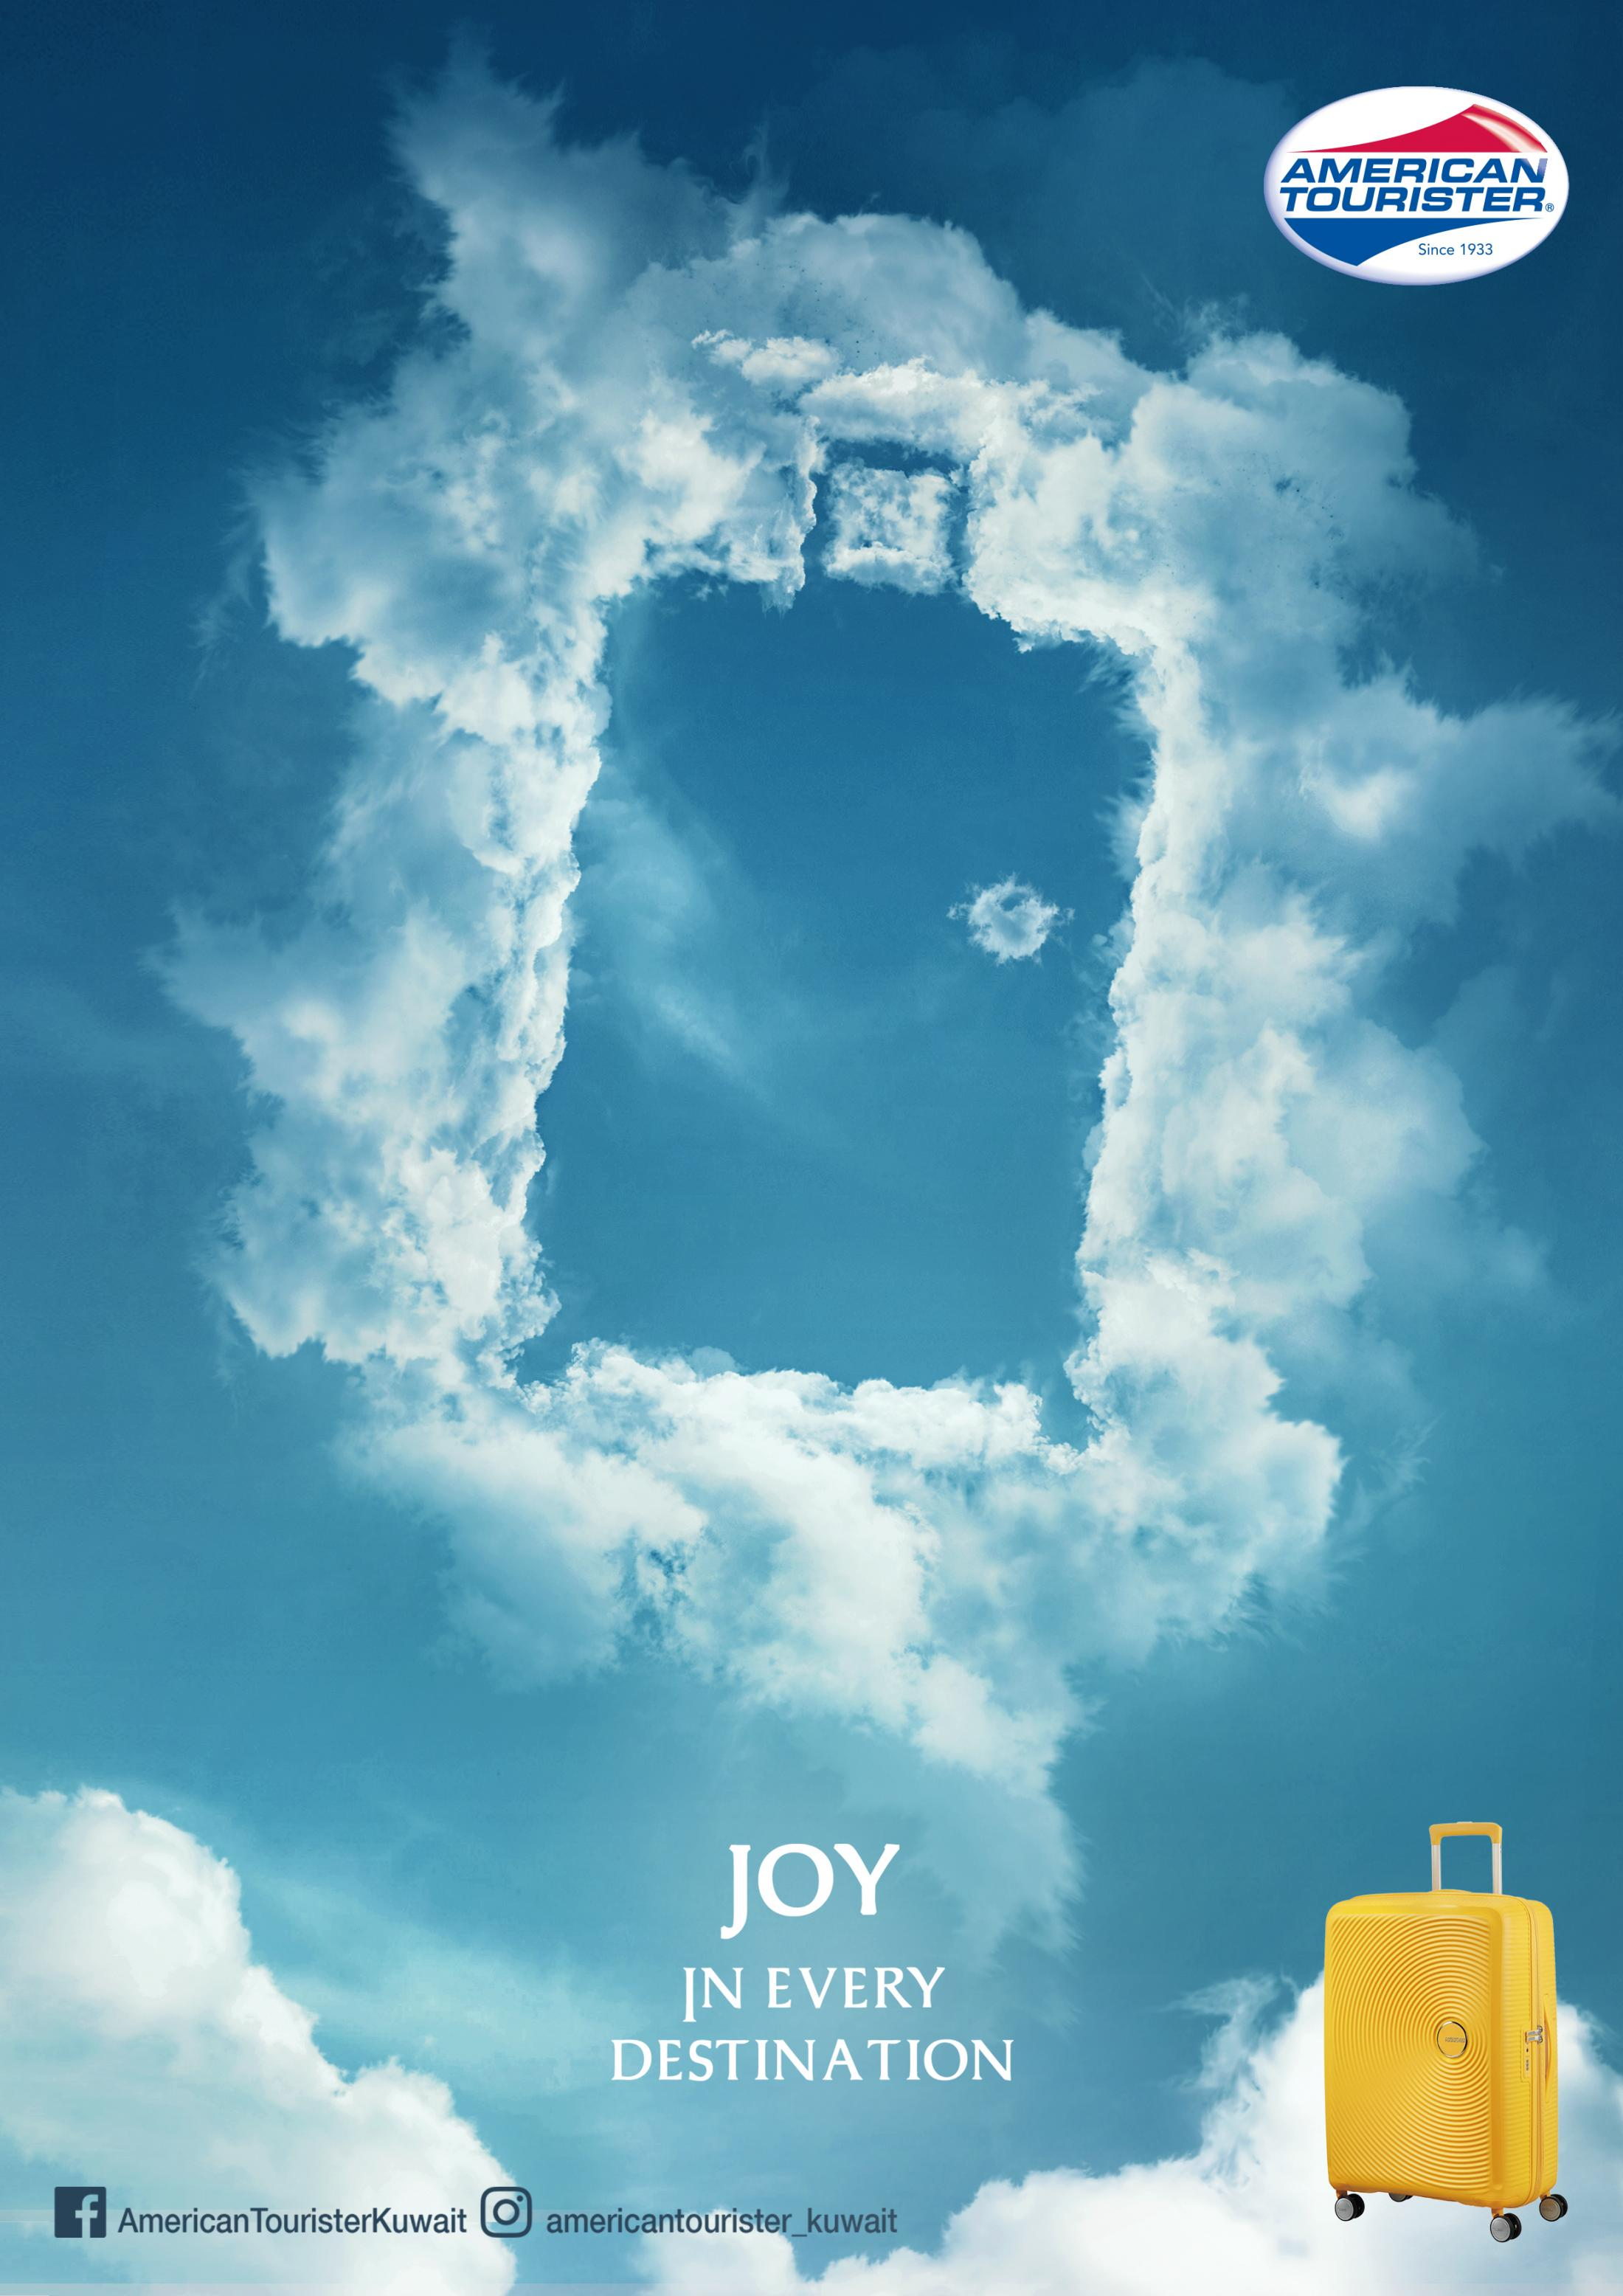 American Tourister Print Ad - Joy in Every Destination, 3